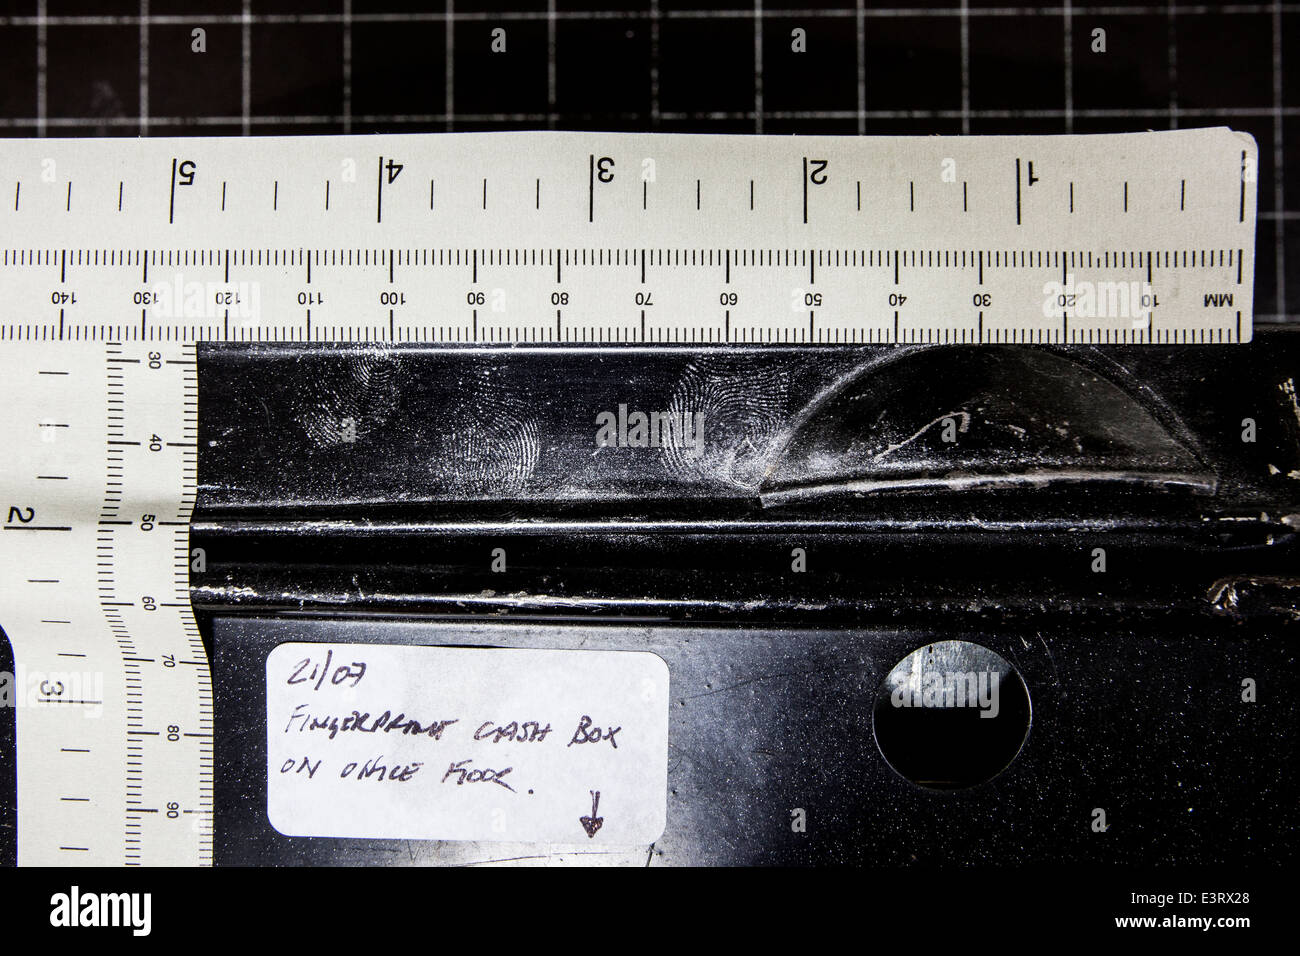 Crime scene examination of a cash tin with aluminium powder showing enhanced fingerprints in the silver power - Stock Image